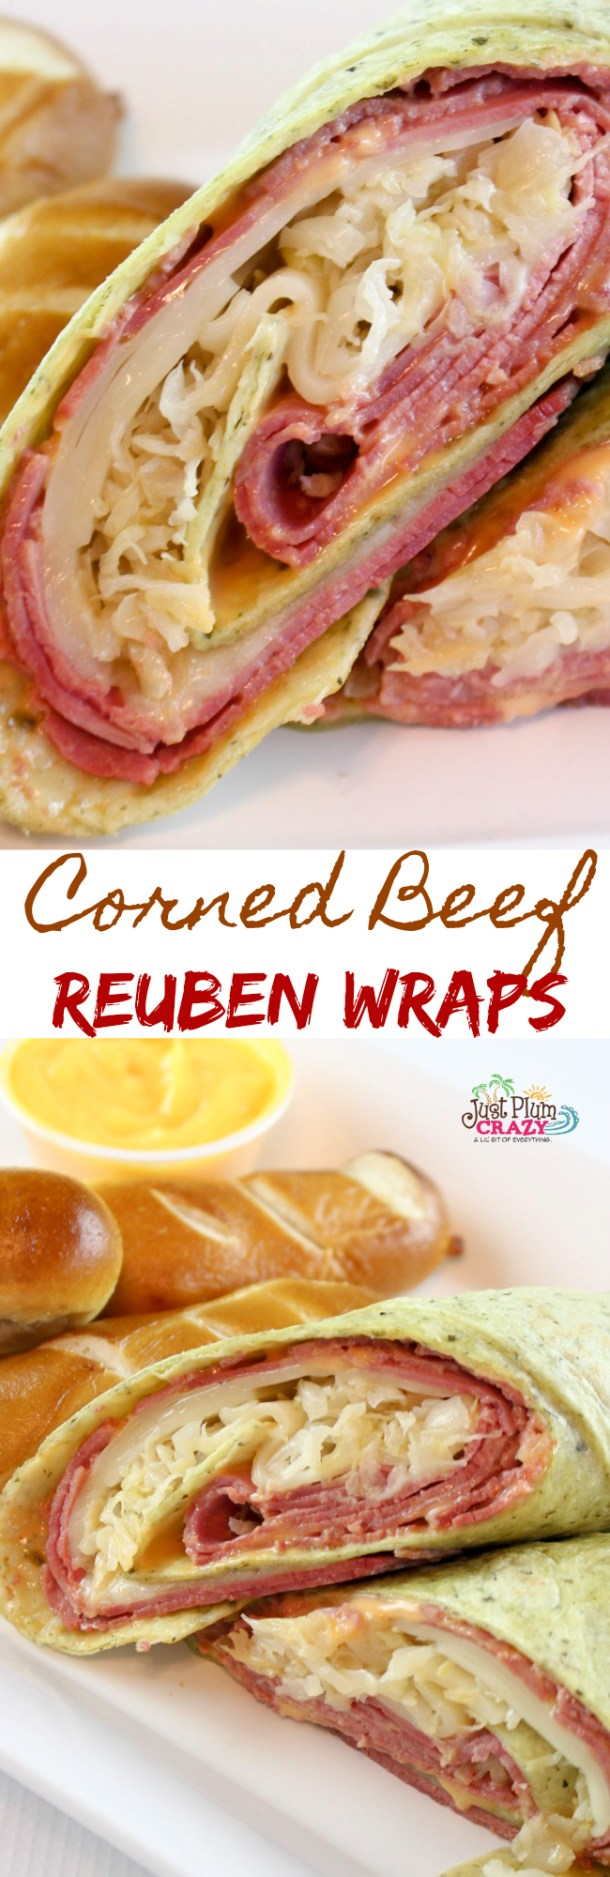 As we celebrate National Hot Pastrami Sandwich Day, I realized that I don't have any Pastrami sandwich recipes. But Corned Beef is a close second isn't it? We have an easy Corned Beef Reuben Wraps recipe | PlumCrazyAboutCoupons.com